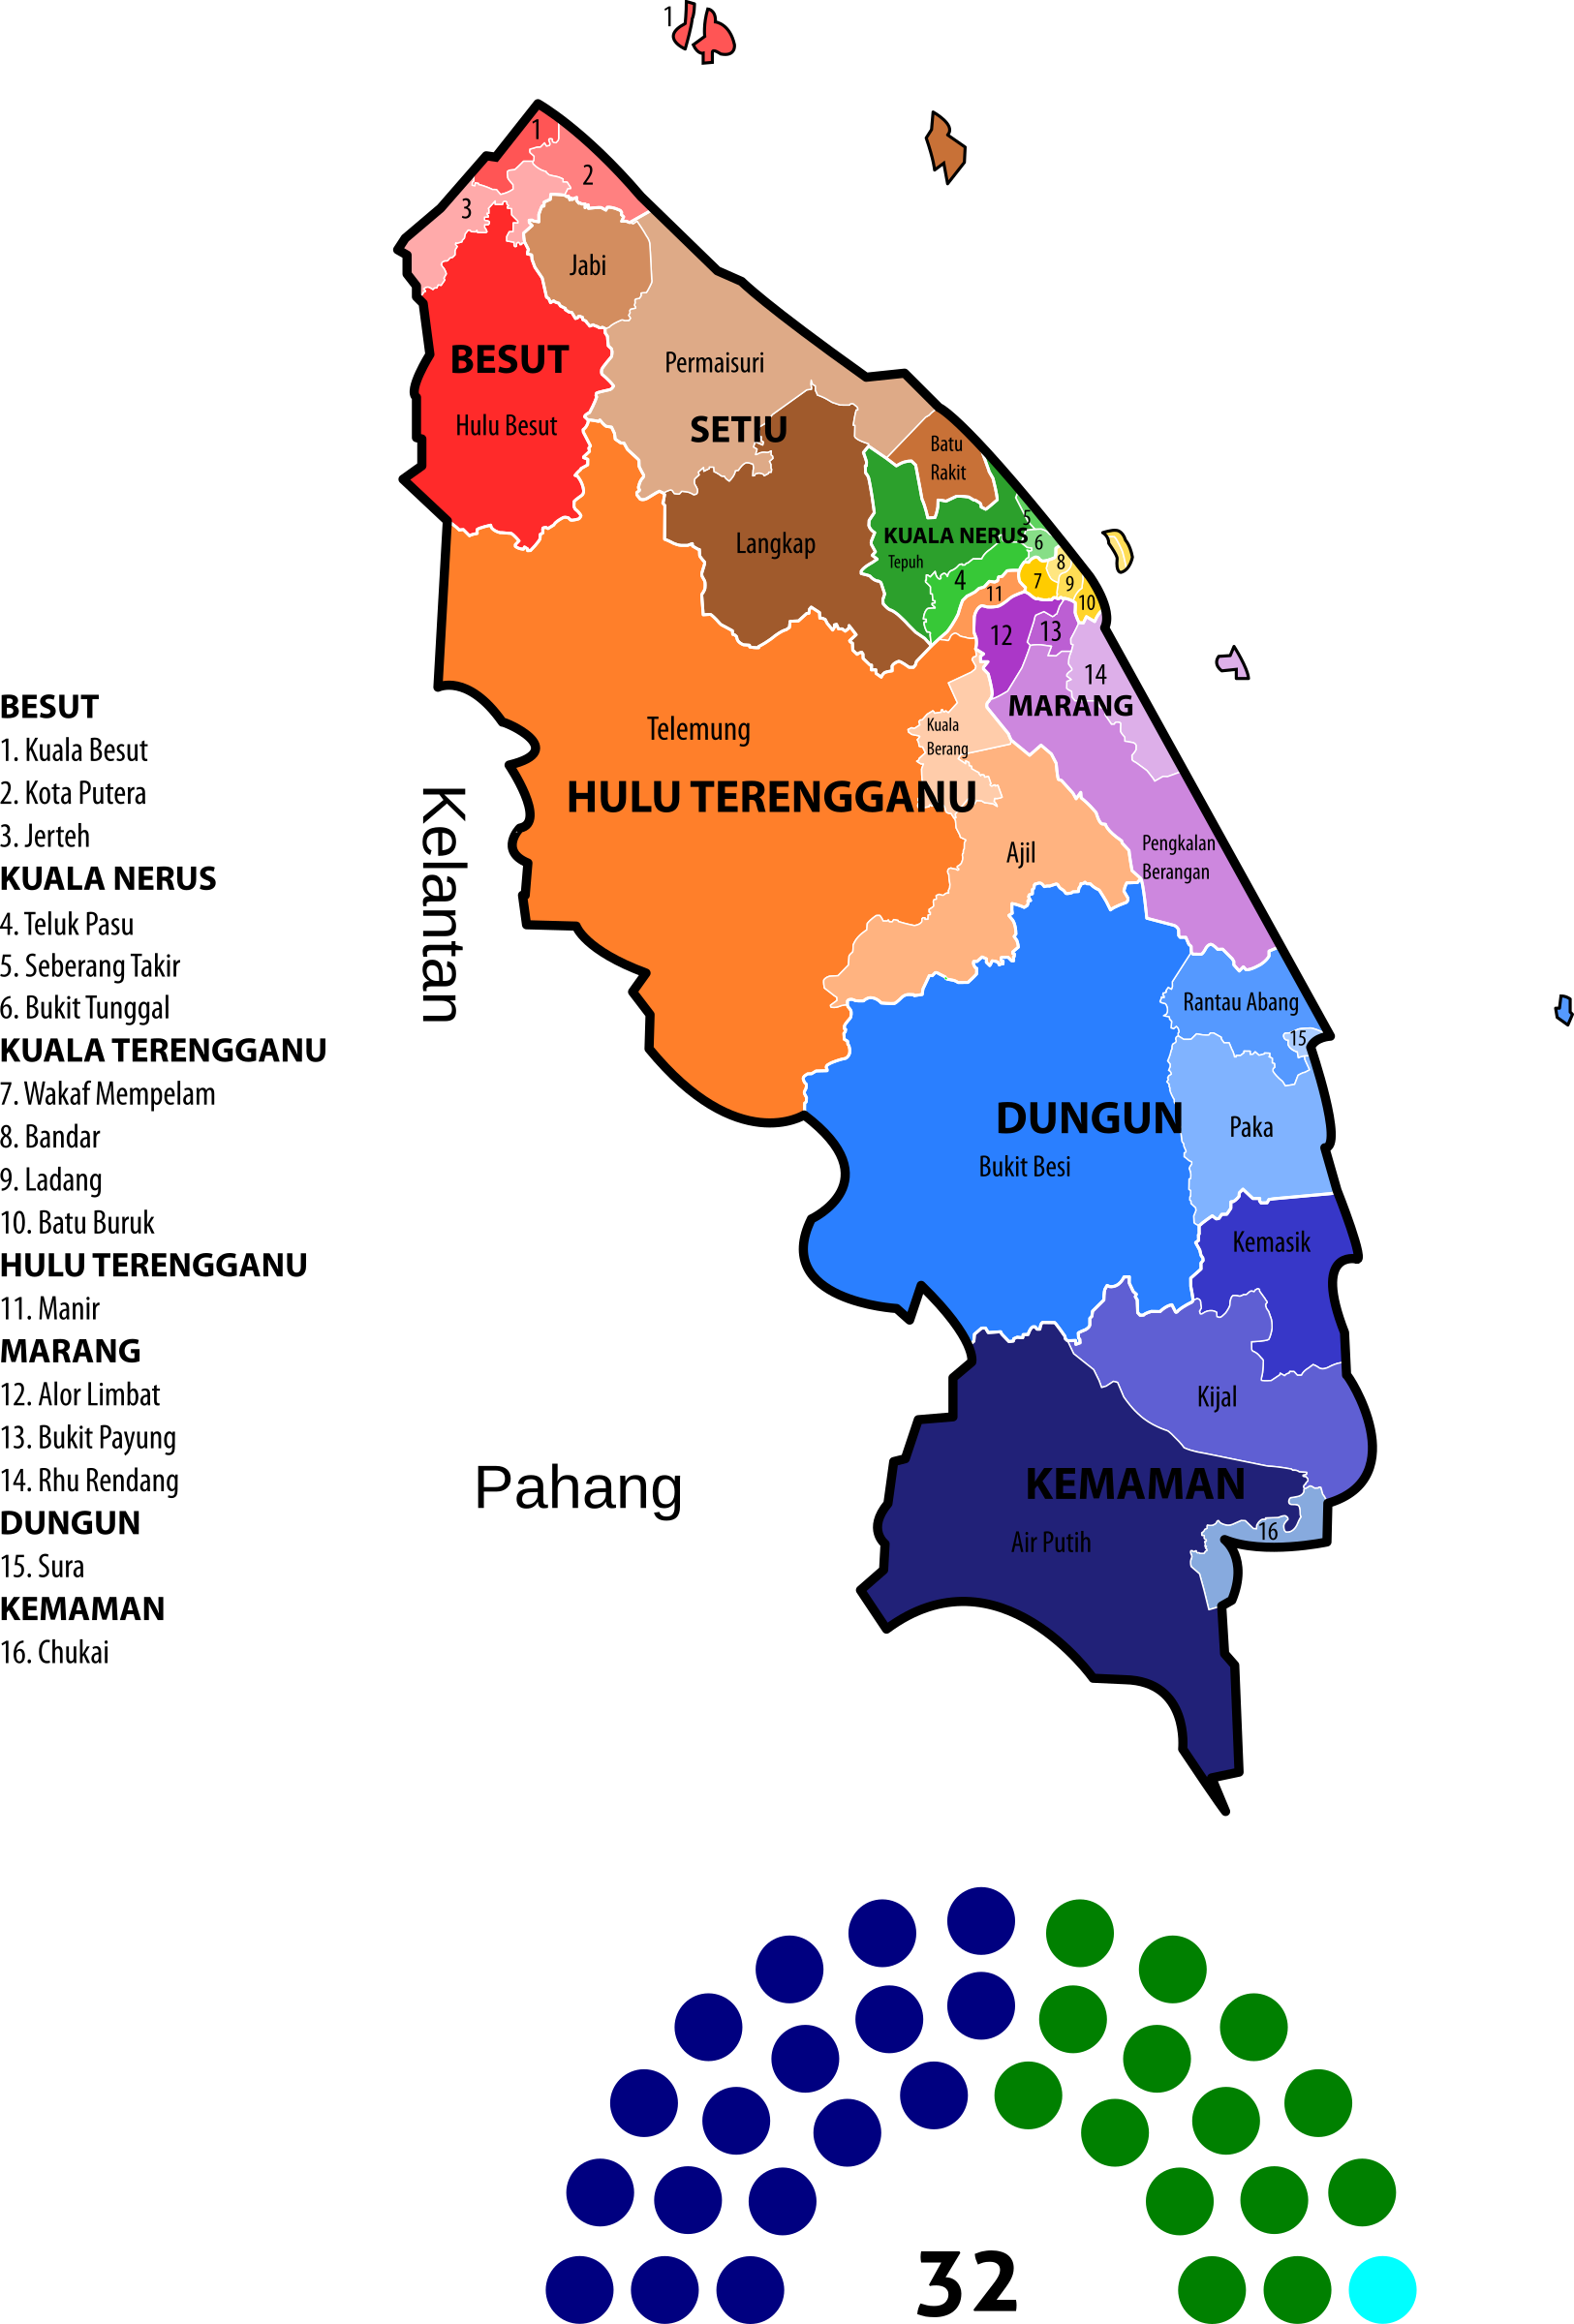 Terengganu State Legislative Assembly Constituencies (2013) by derkommander0916